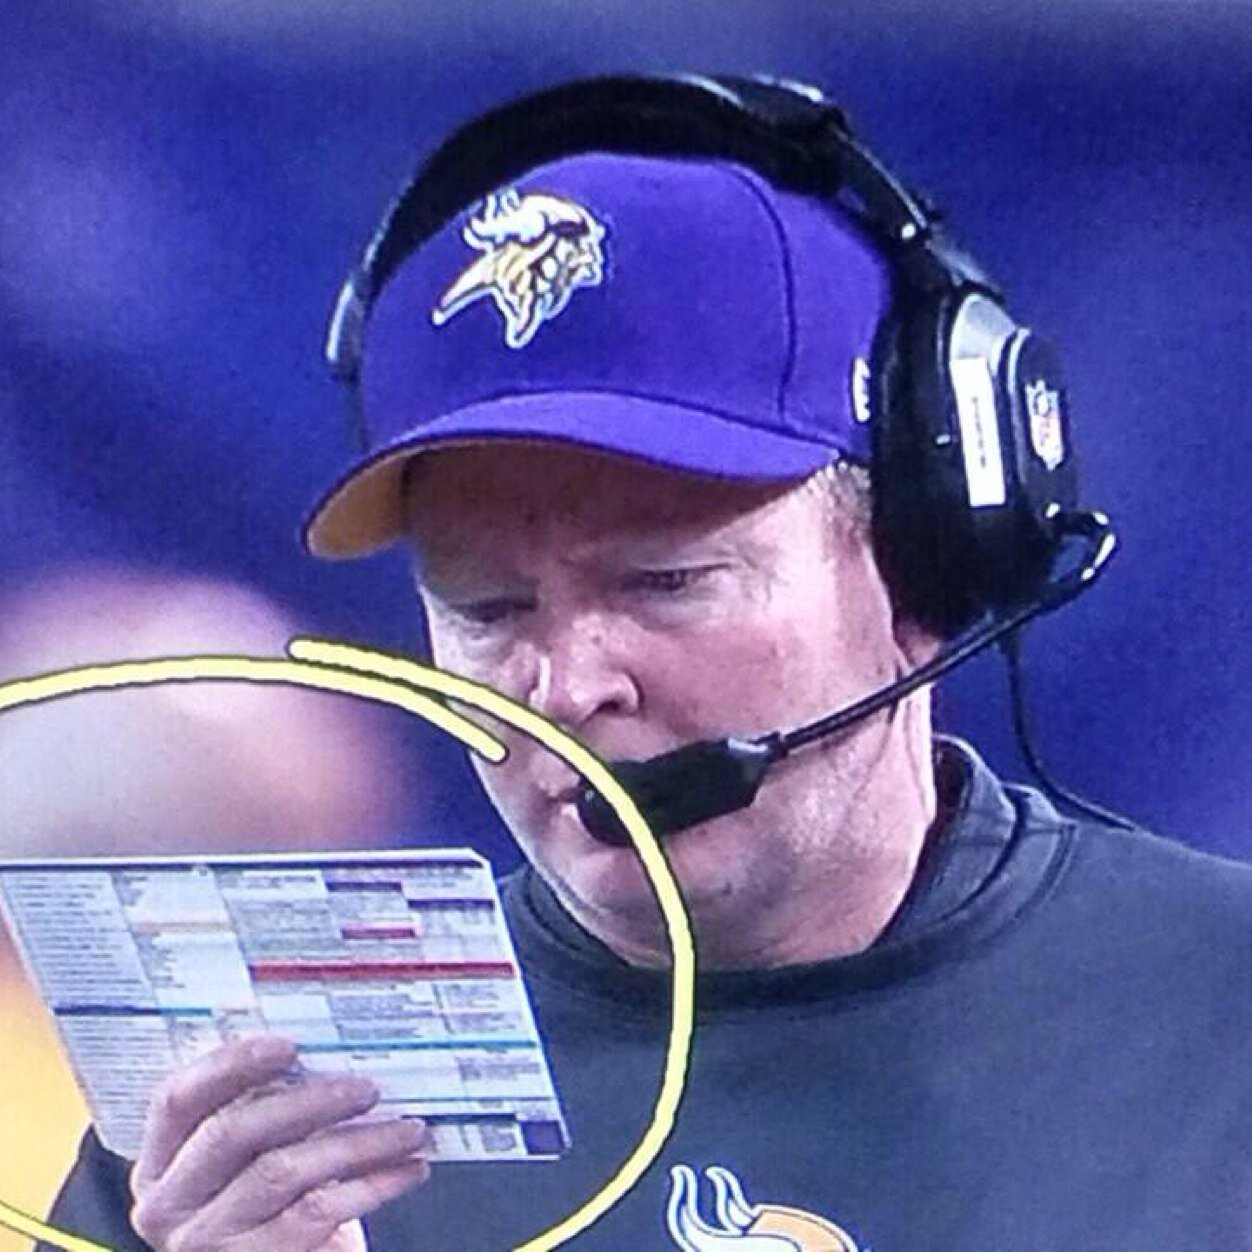 """""""Oh boy, then do I have a play sheet for you!"""" - Bill Musgrave"""